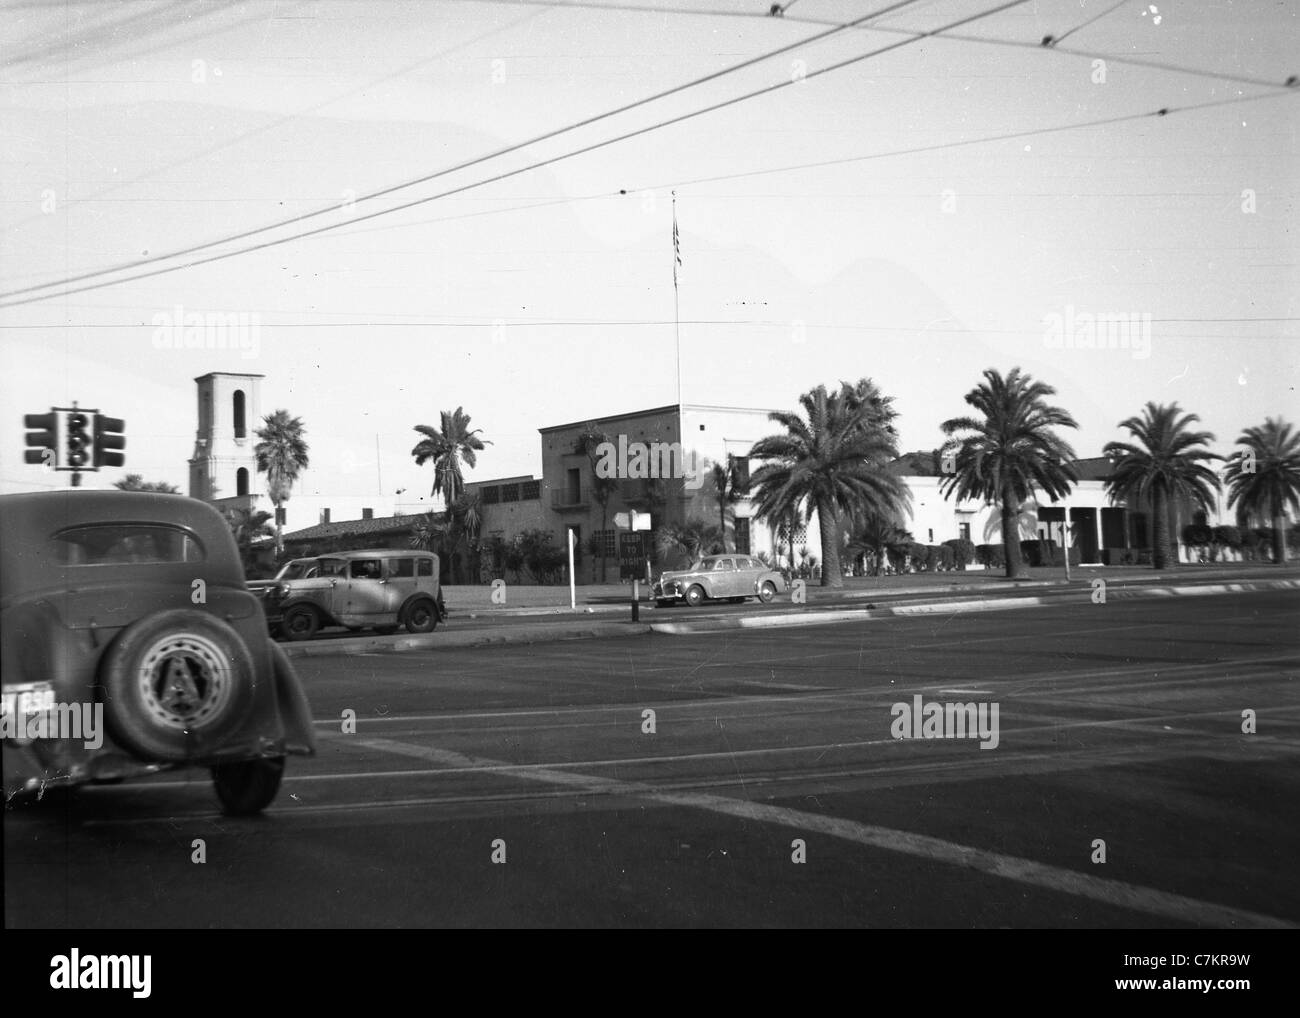 Los Angeles intersection with cars 1930s palm trees road travel buildings - Stock Image